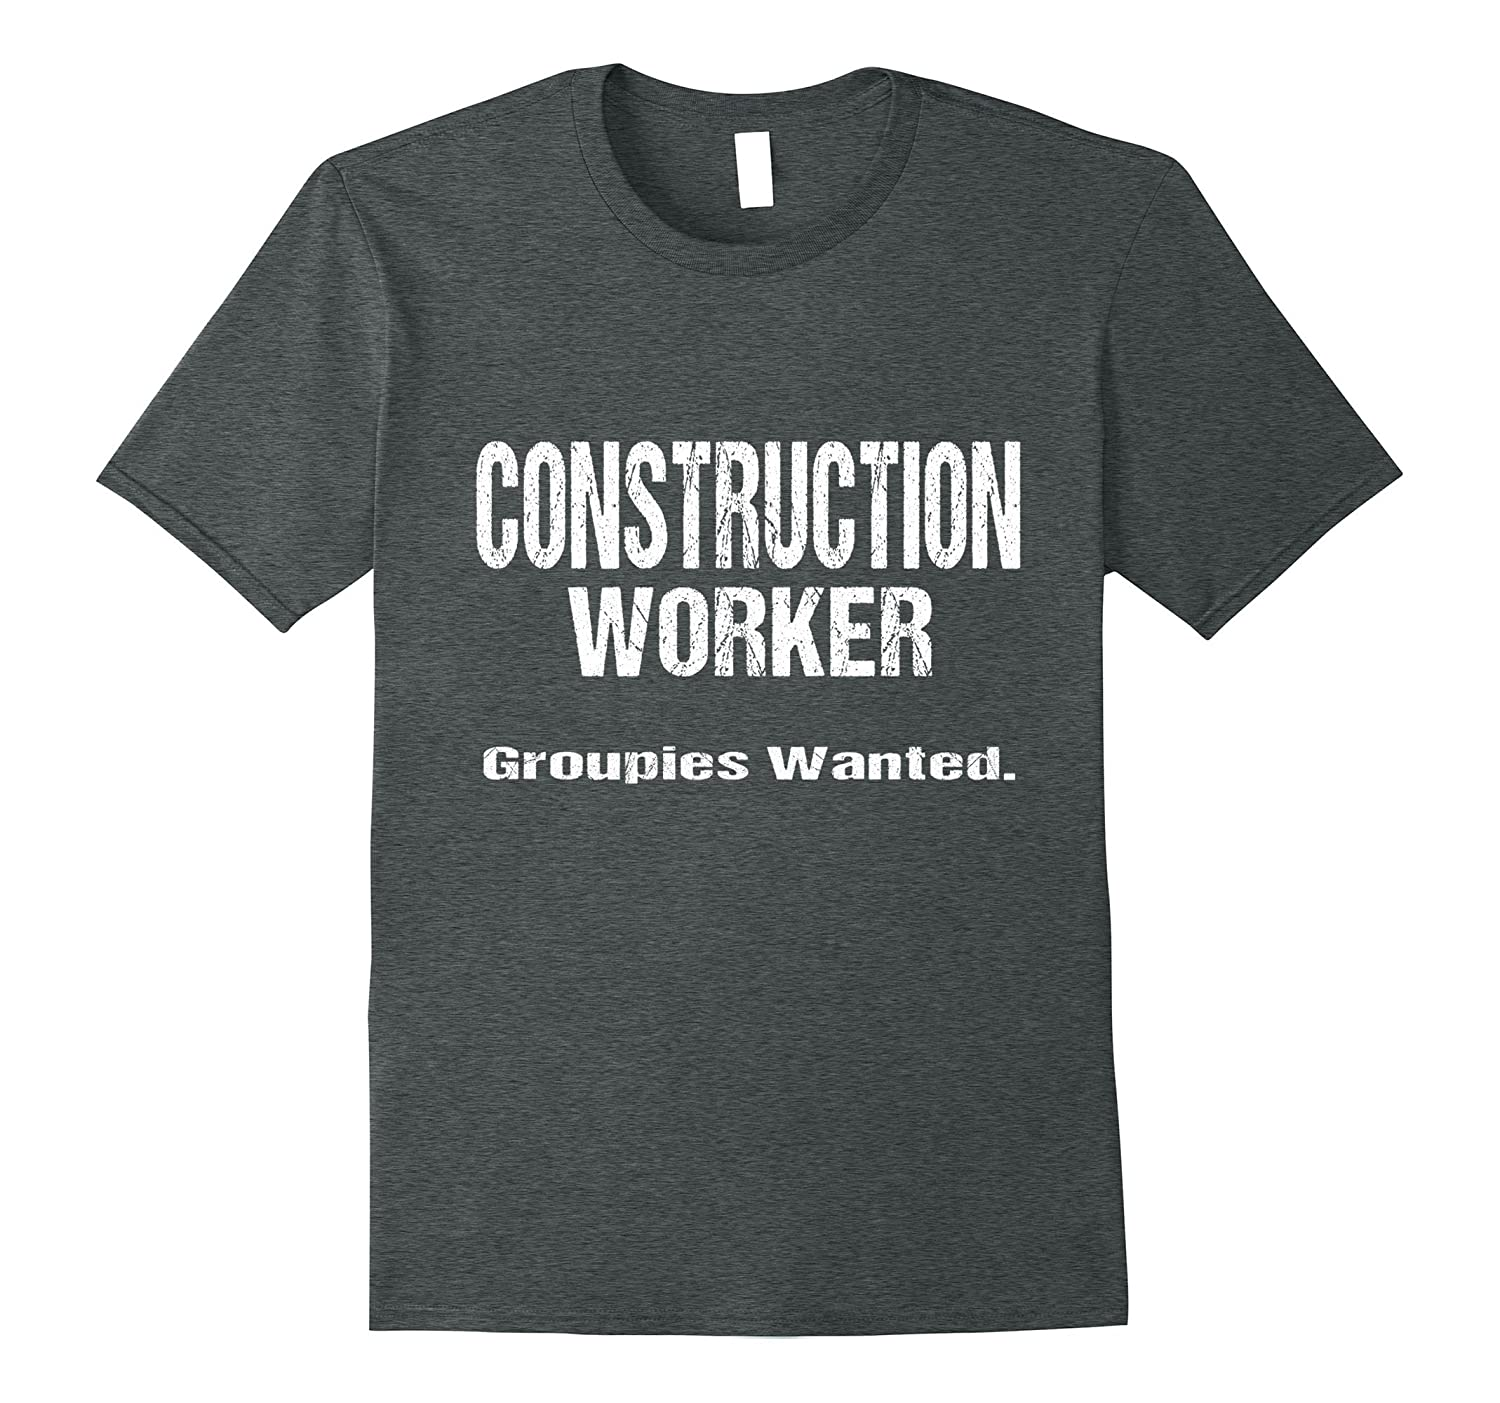 Funny Construction Tee Construction Worker -Groupies Wanted-PL